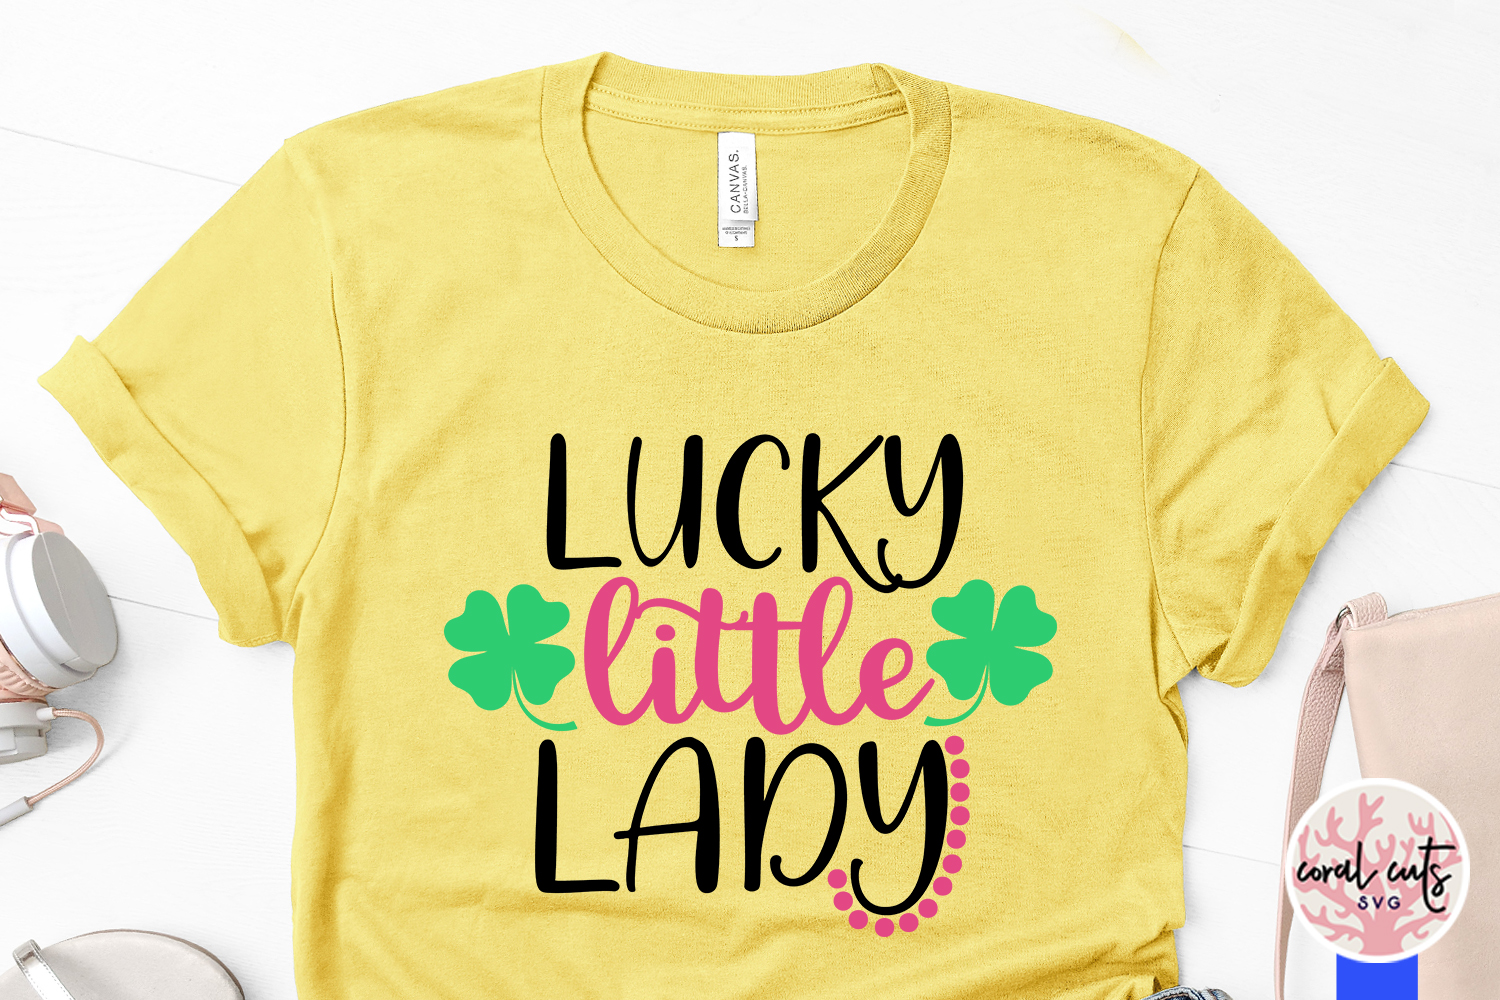 Lucky little lady - St. Patrick's Day SVG EPS DXF PNG example image 3